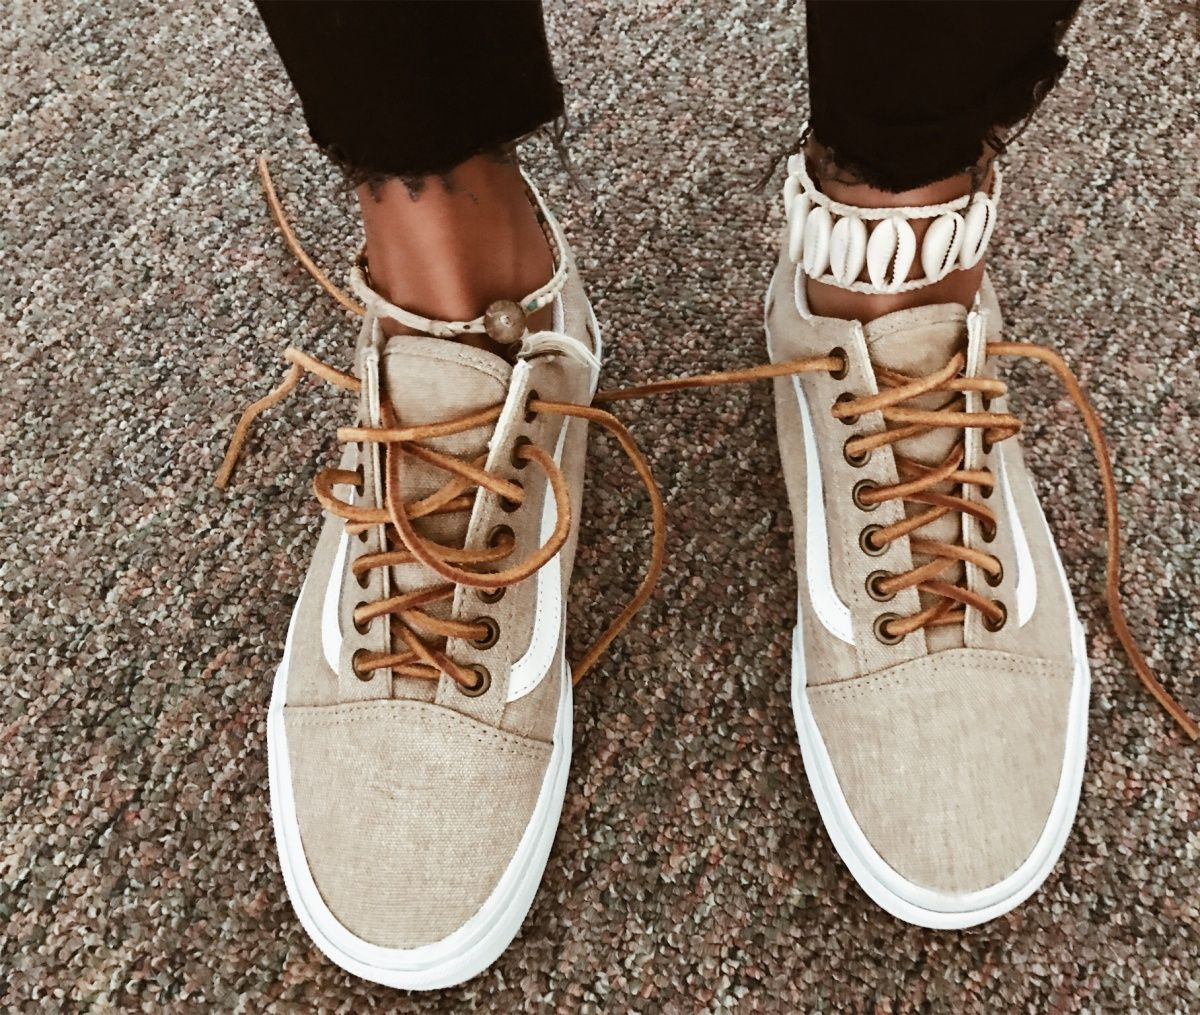 Pin by Kilynn Carr on Vans shoes (With images) | Cute shoes